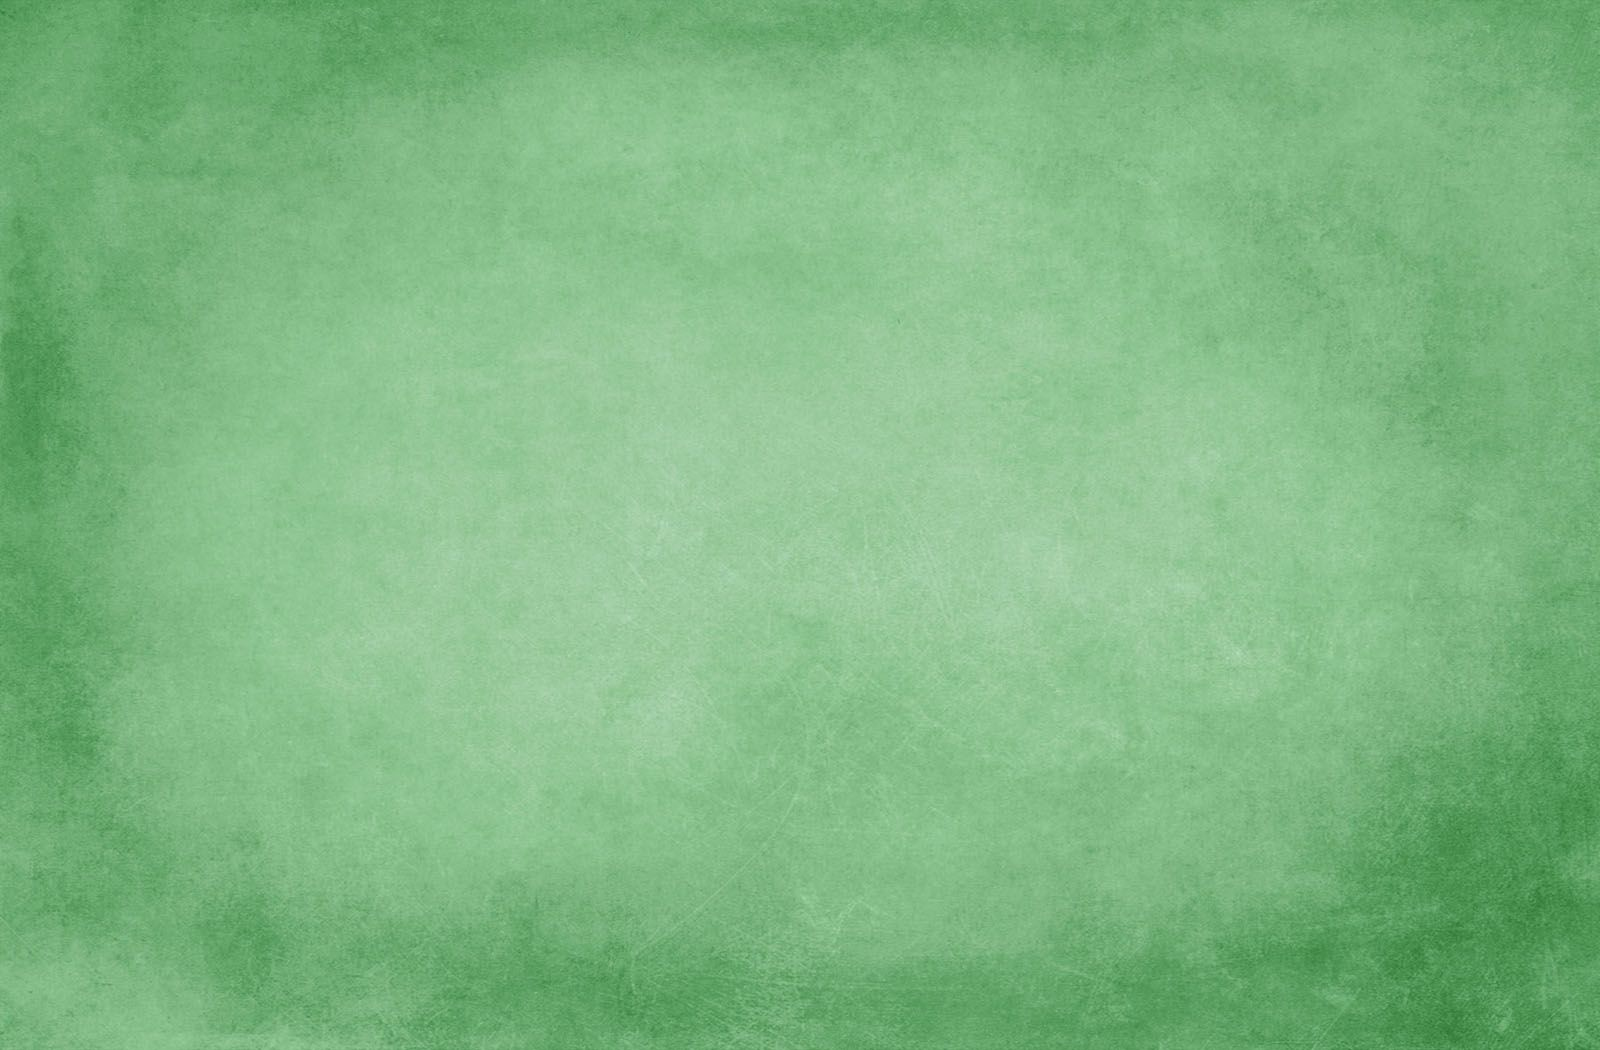 Cool Solid Color Backgrounds